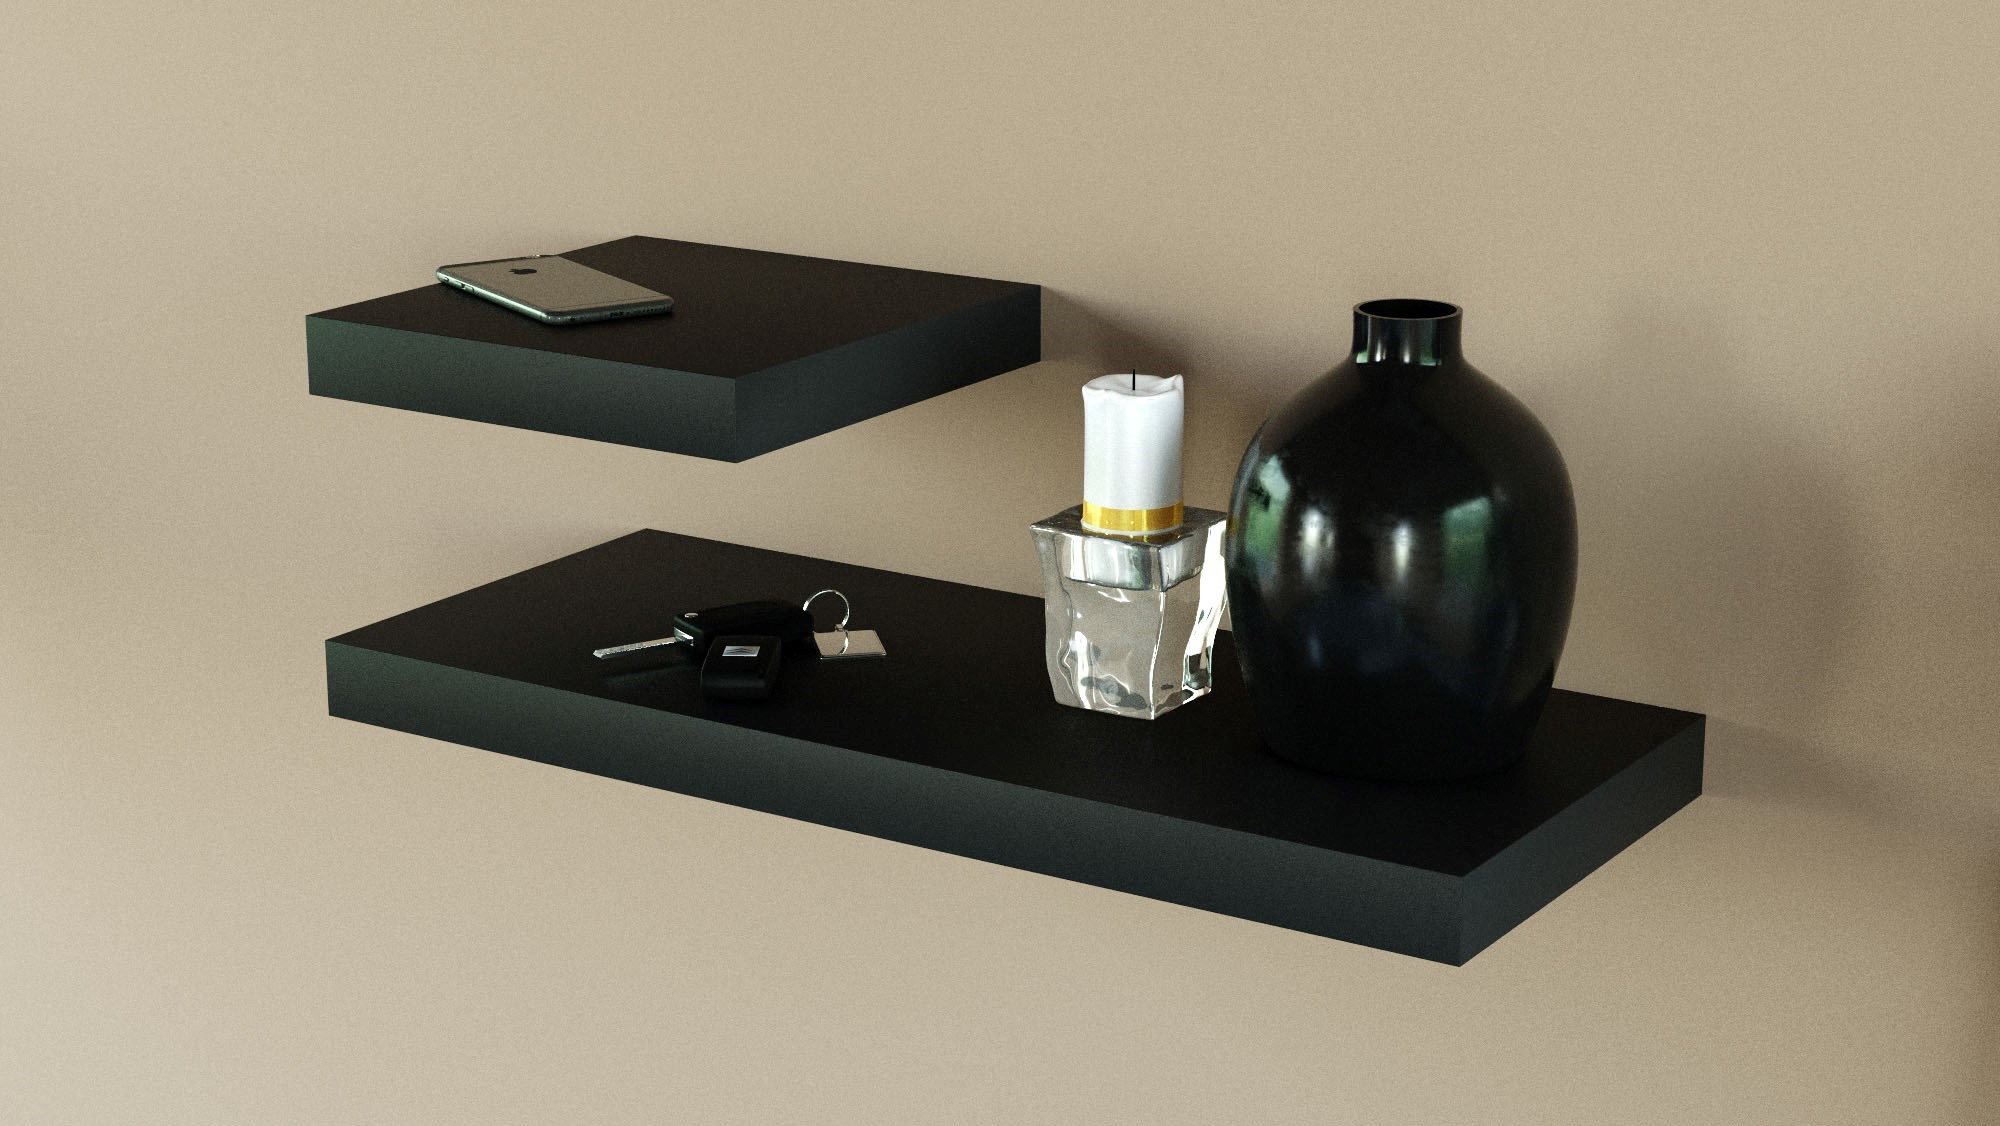 Black floating shelves 600 and 250 x 250 double deal 2